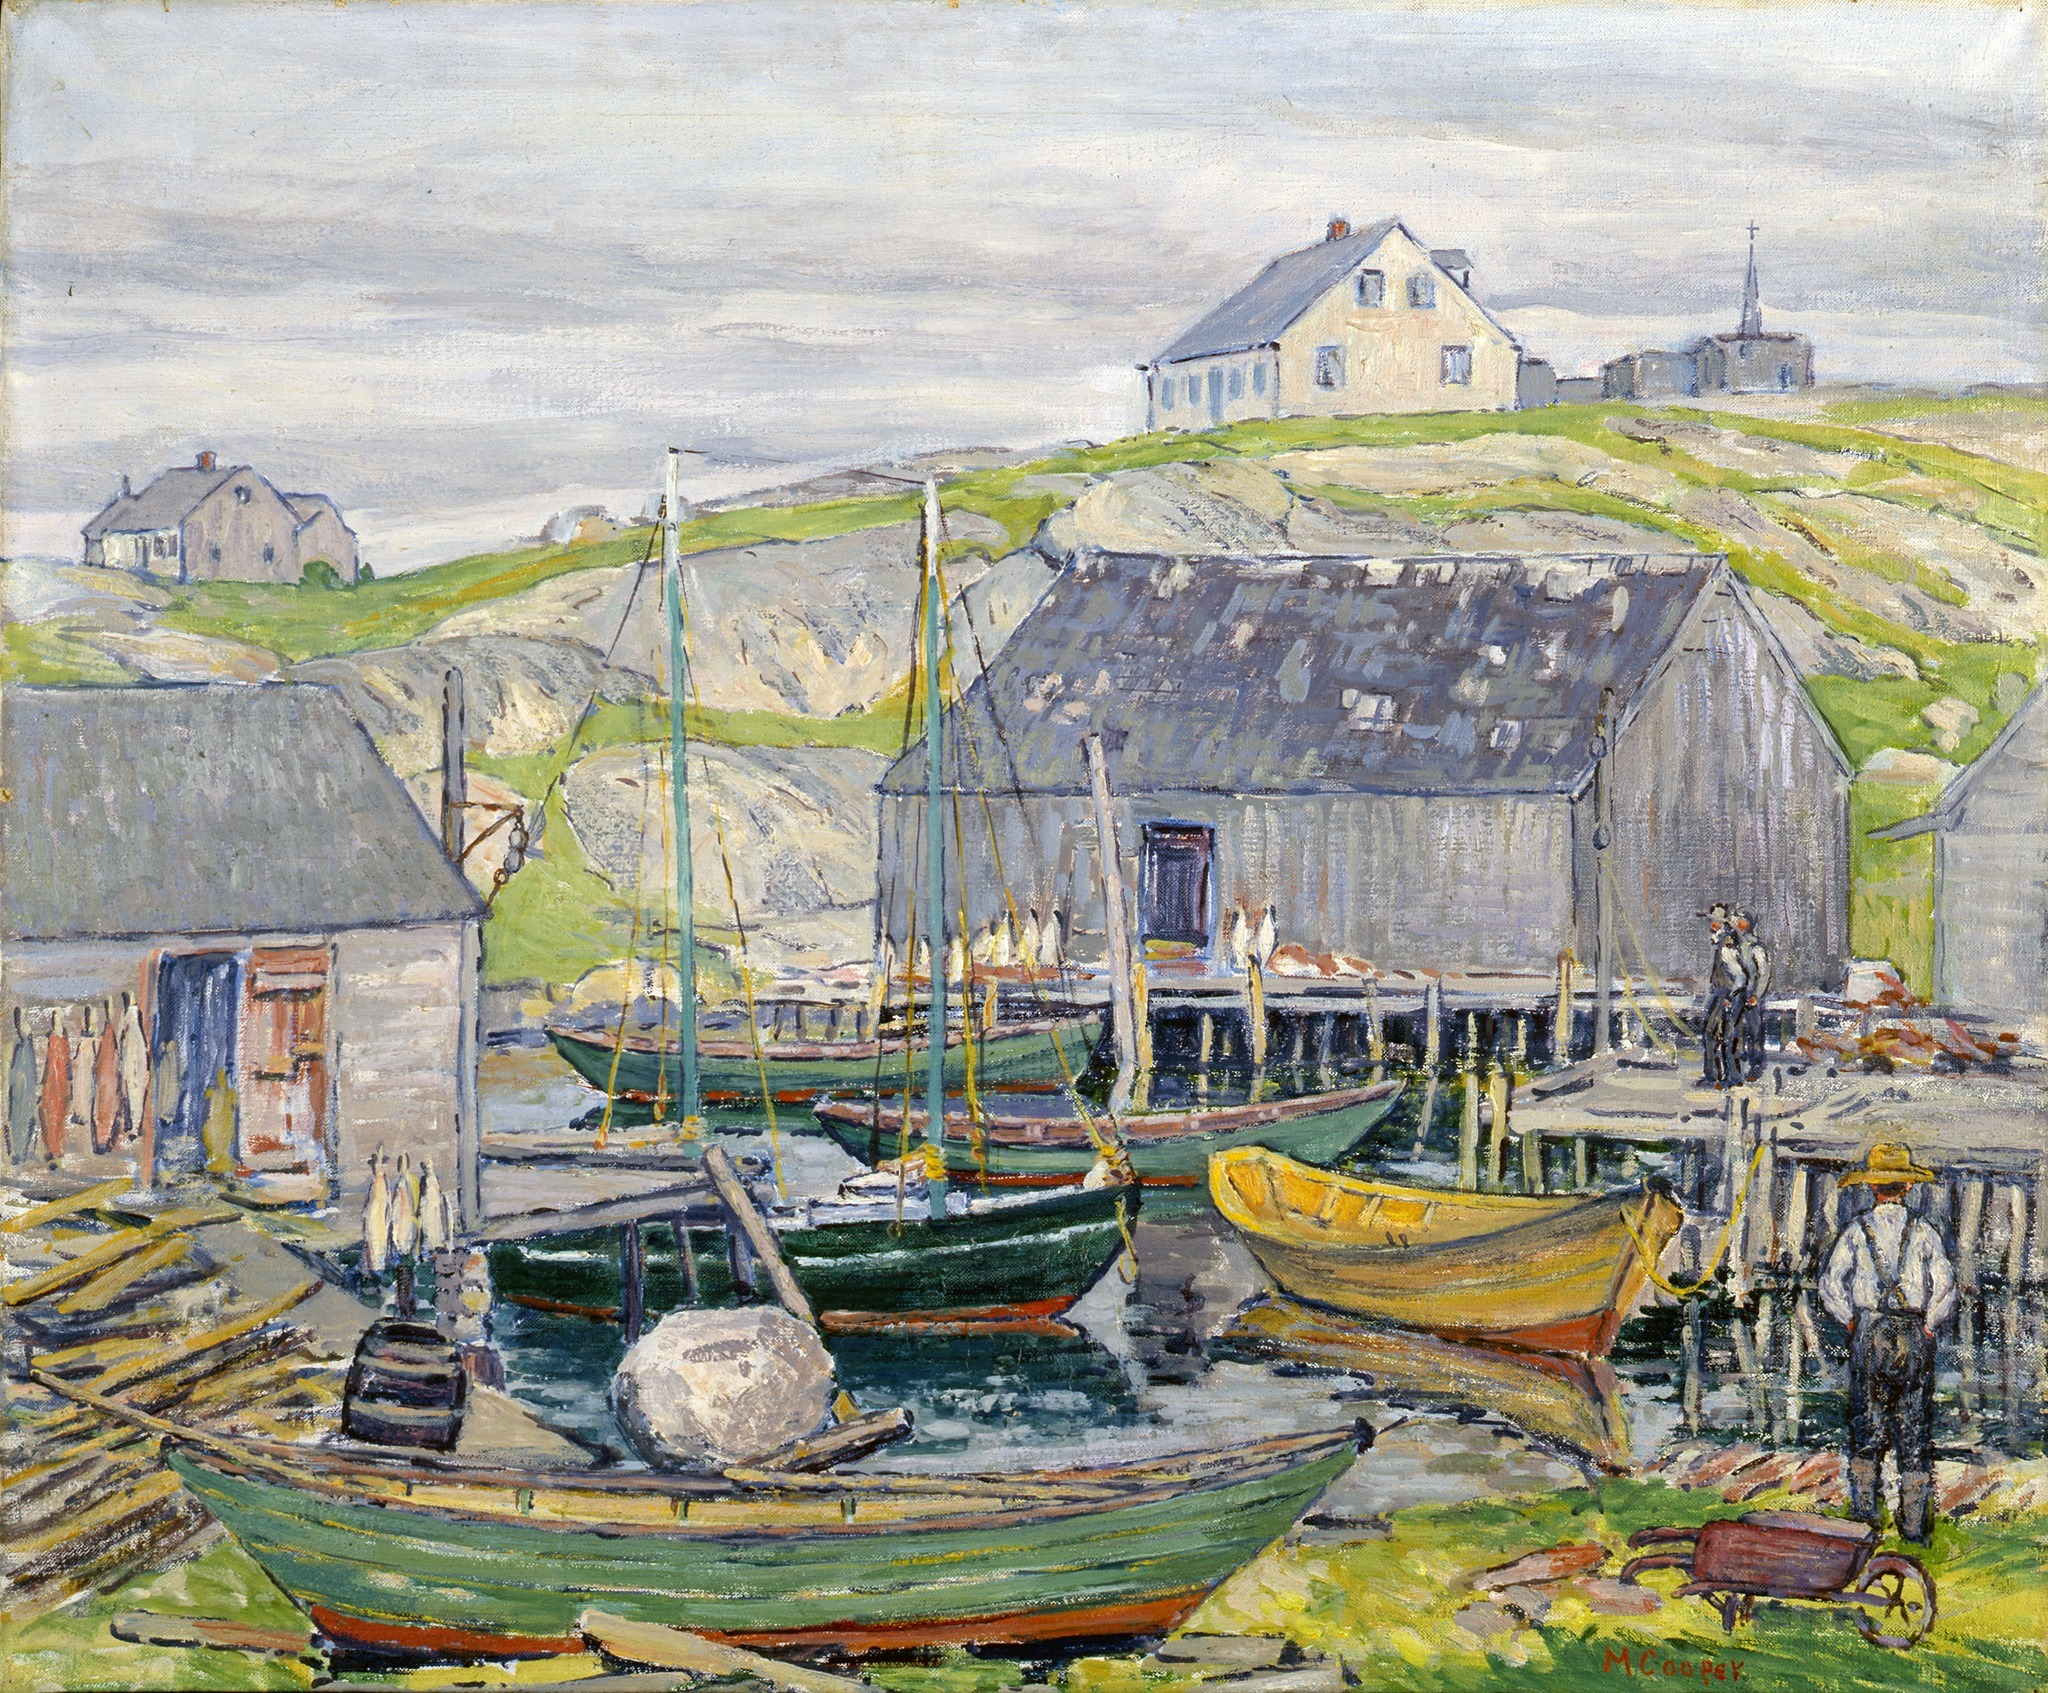 """Margaret Miller Cooper, <i>Fishing Boats, Nova Scotia</i>, Peggy's Cove,"""" 1929, Oil on canvas, 25 x 30 in., Grace Judd Landers Fund"""